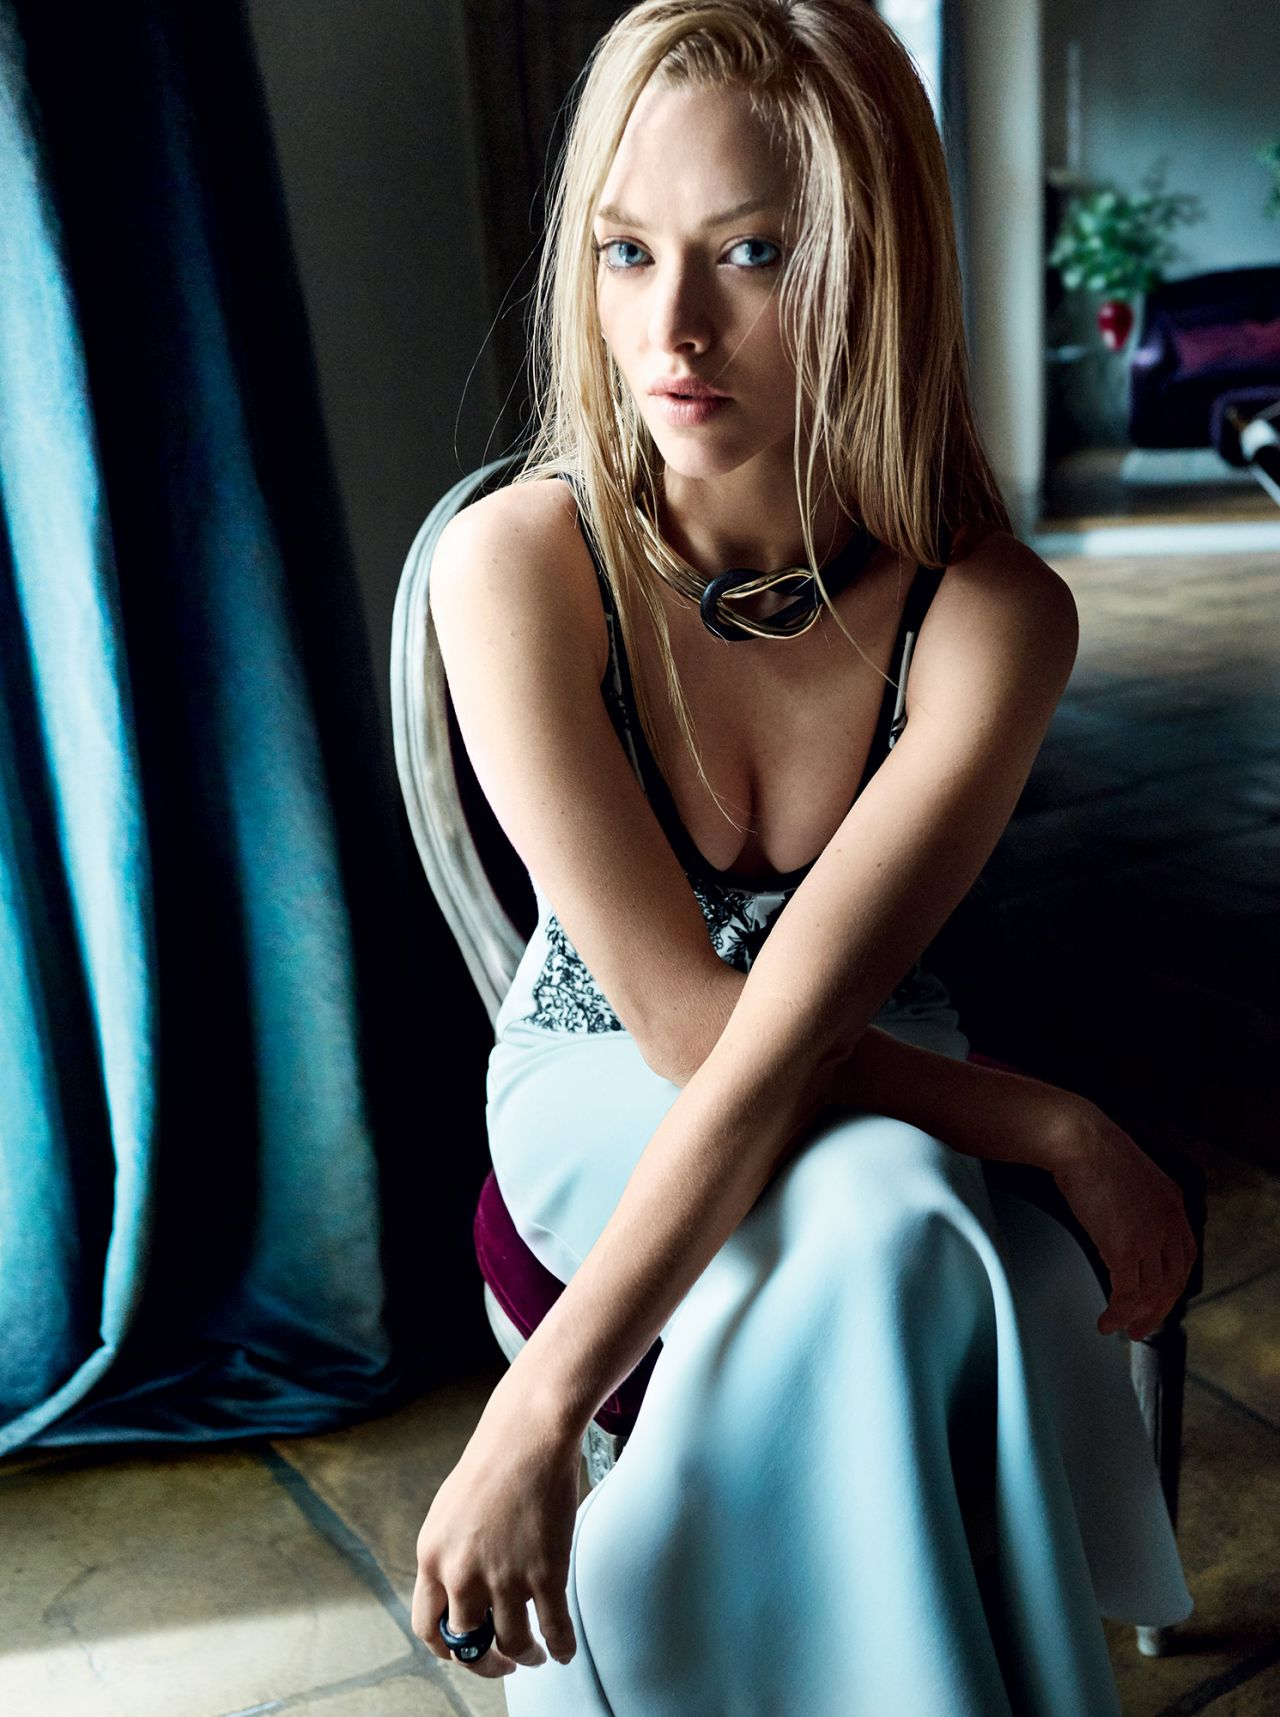 Amanda Seyfried Vogue Magazine June 2015 Cover And Photos